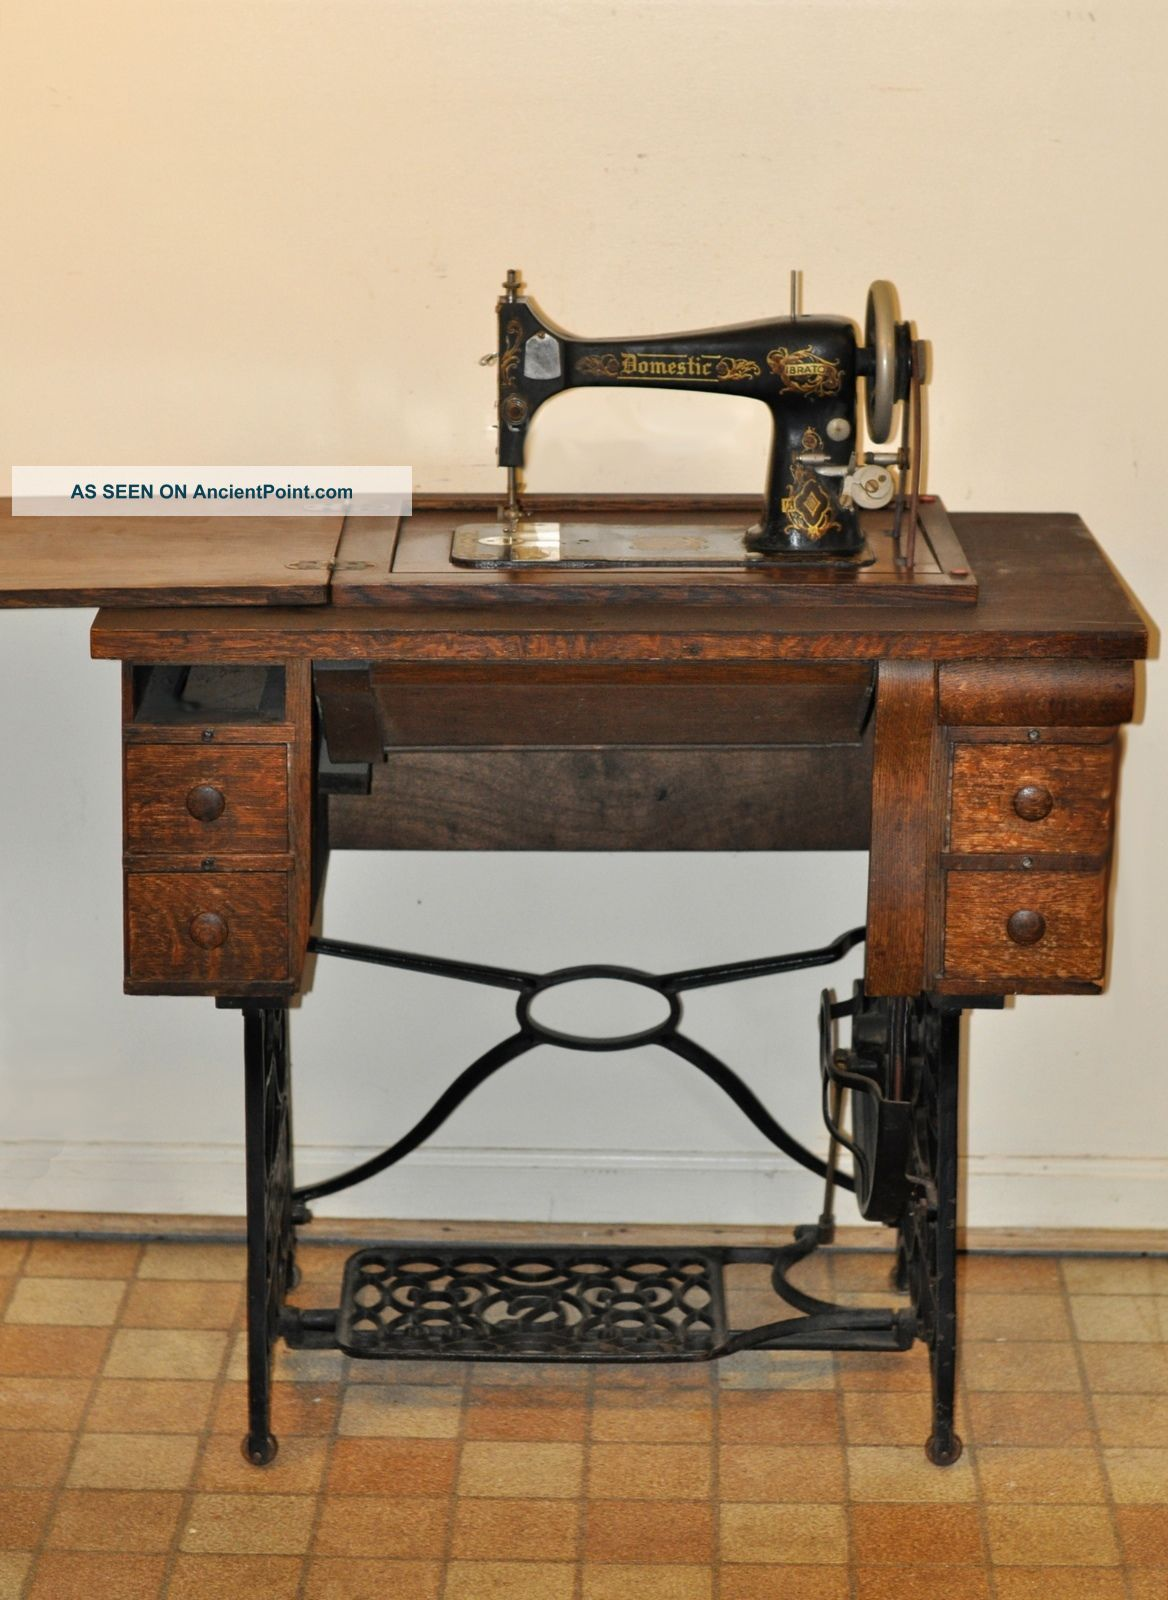 Antique Domestic Treadle Sewing Machine And Cabinet With ...